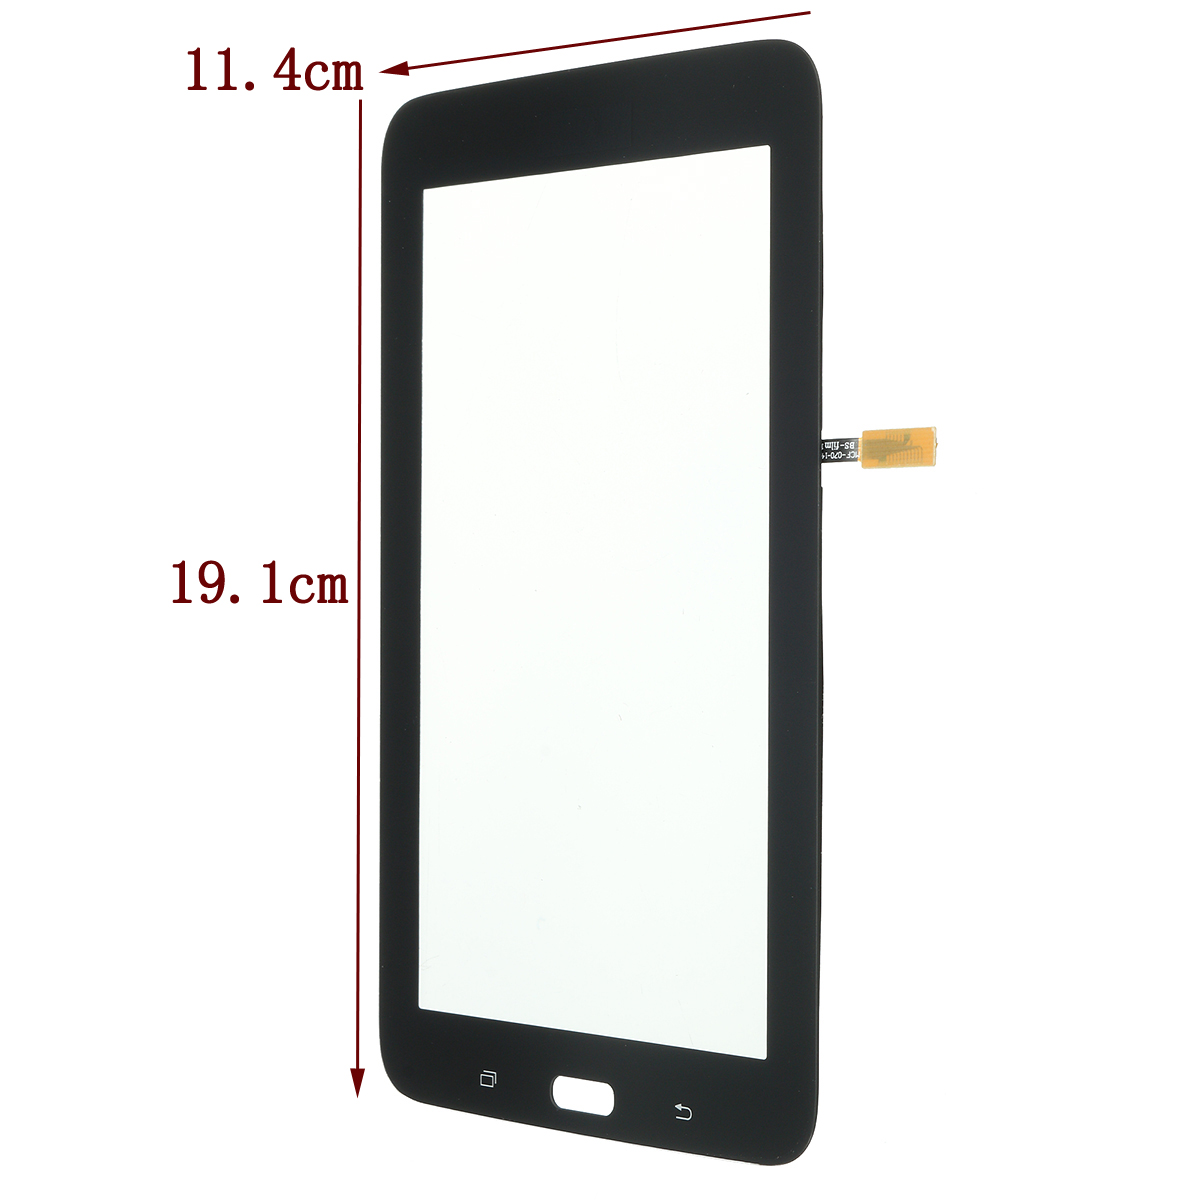 LCD Touch Screen Replacement Digitizer Panel Repair Tool For Samsung Galaxy Tab 3 Lite 7.0 T110 WiFi